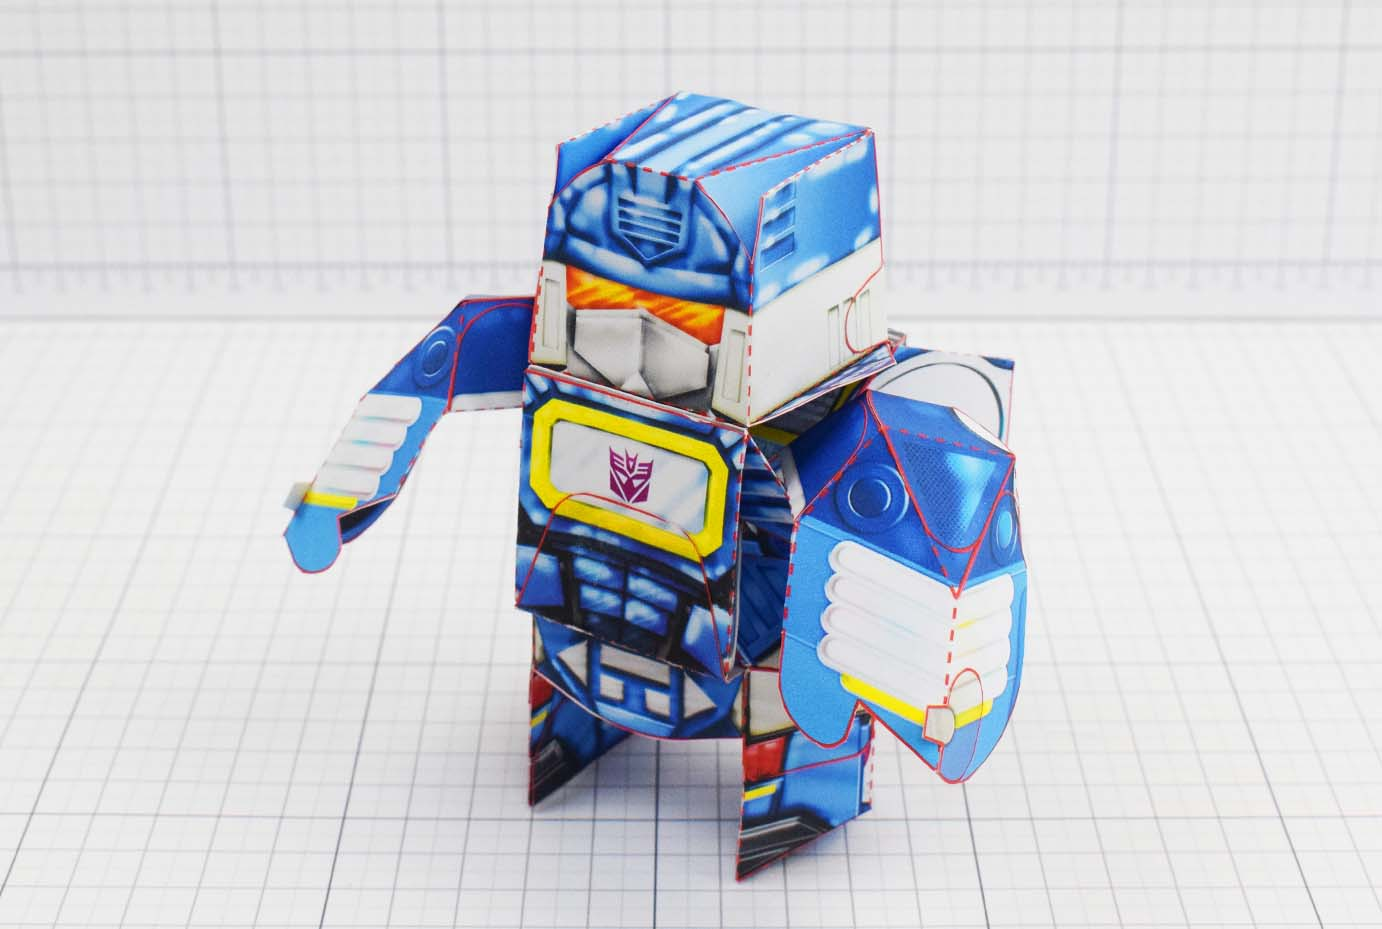 Working transformer fan art paper toy design paper craft model sound wave soundwave